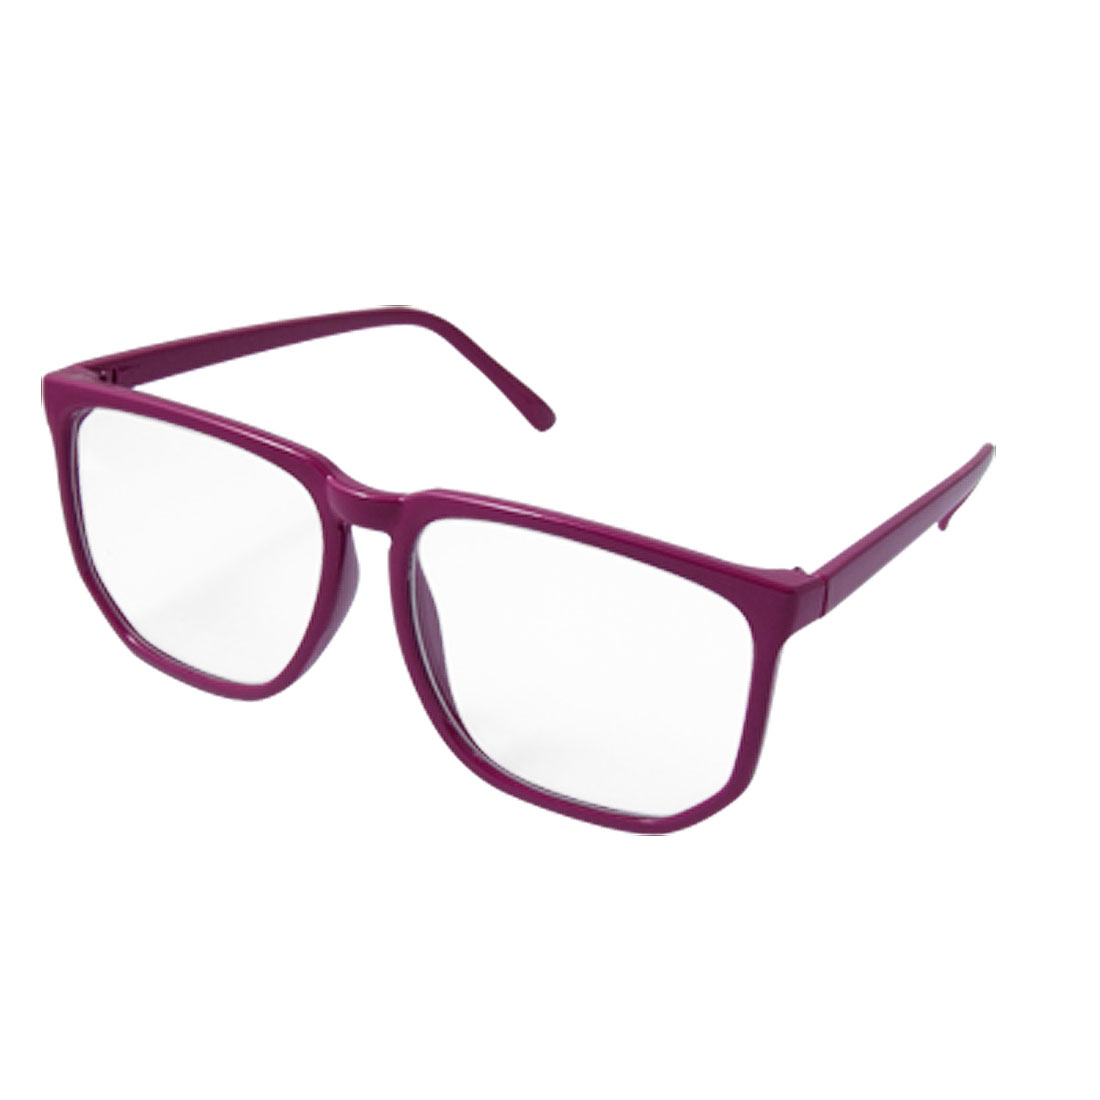 Oversize Clear Lens Fuchsia Plastic Frame Ladies Glasses